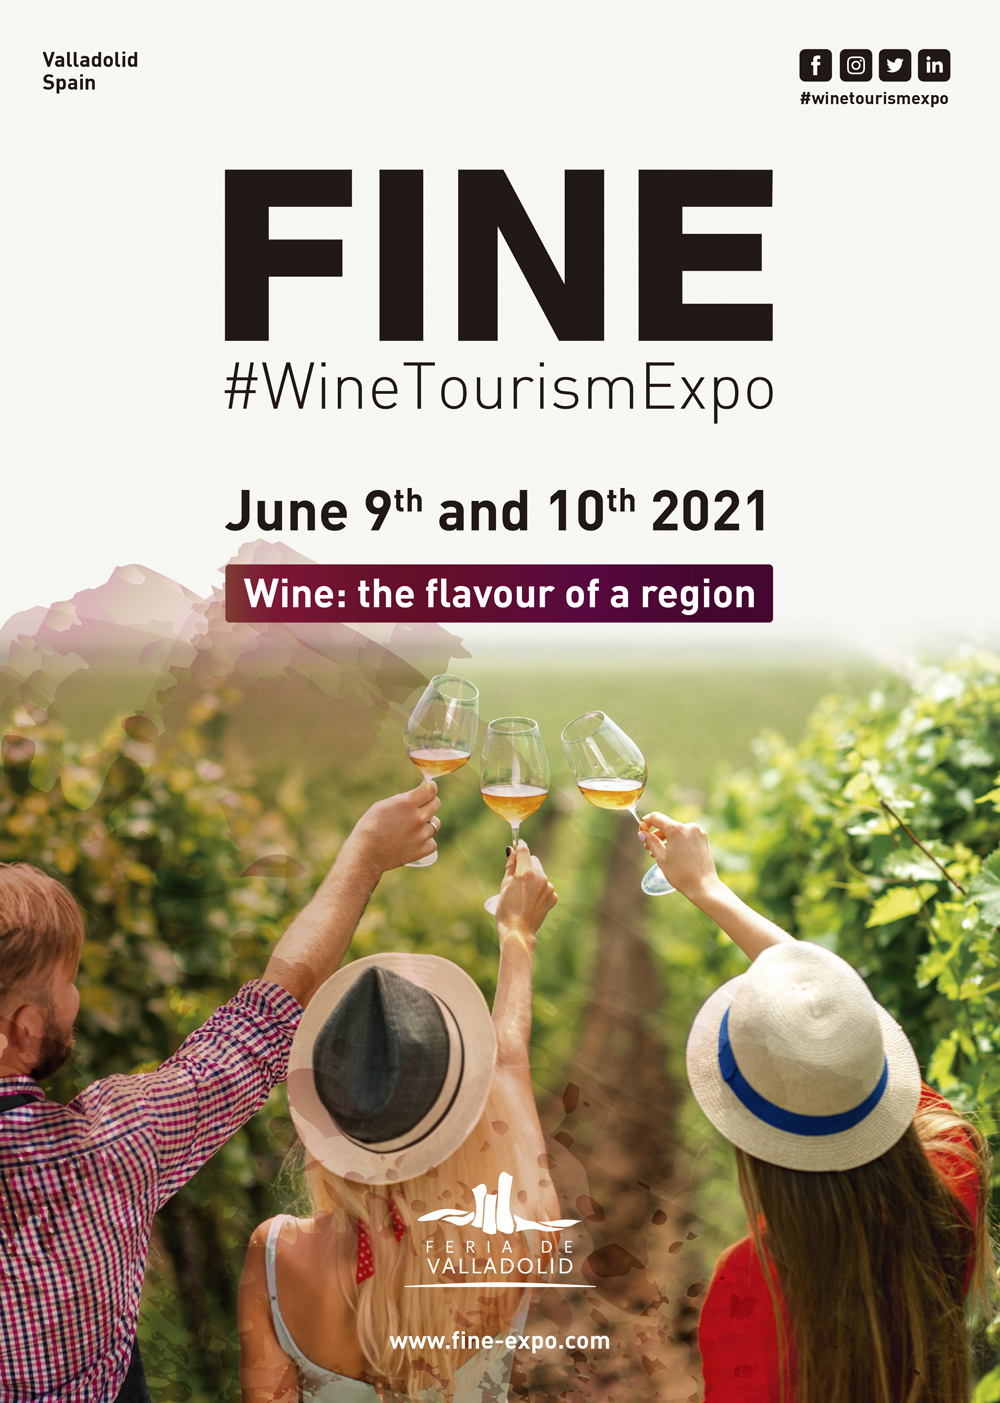 Valladolid to host second edition of FINE, the International Wine Tourism Fair next JuneTravel And Tour World